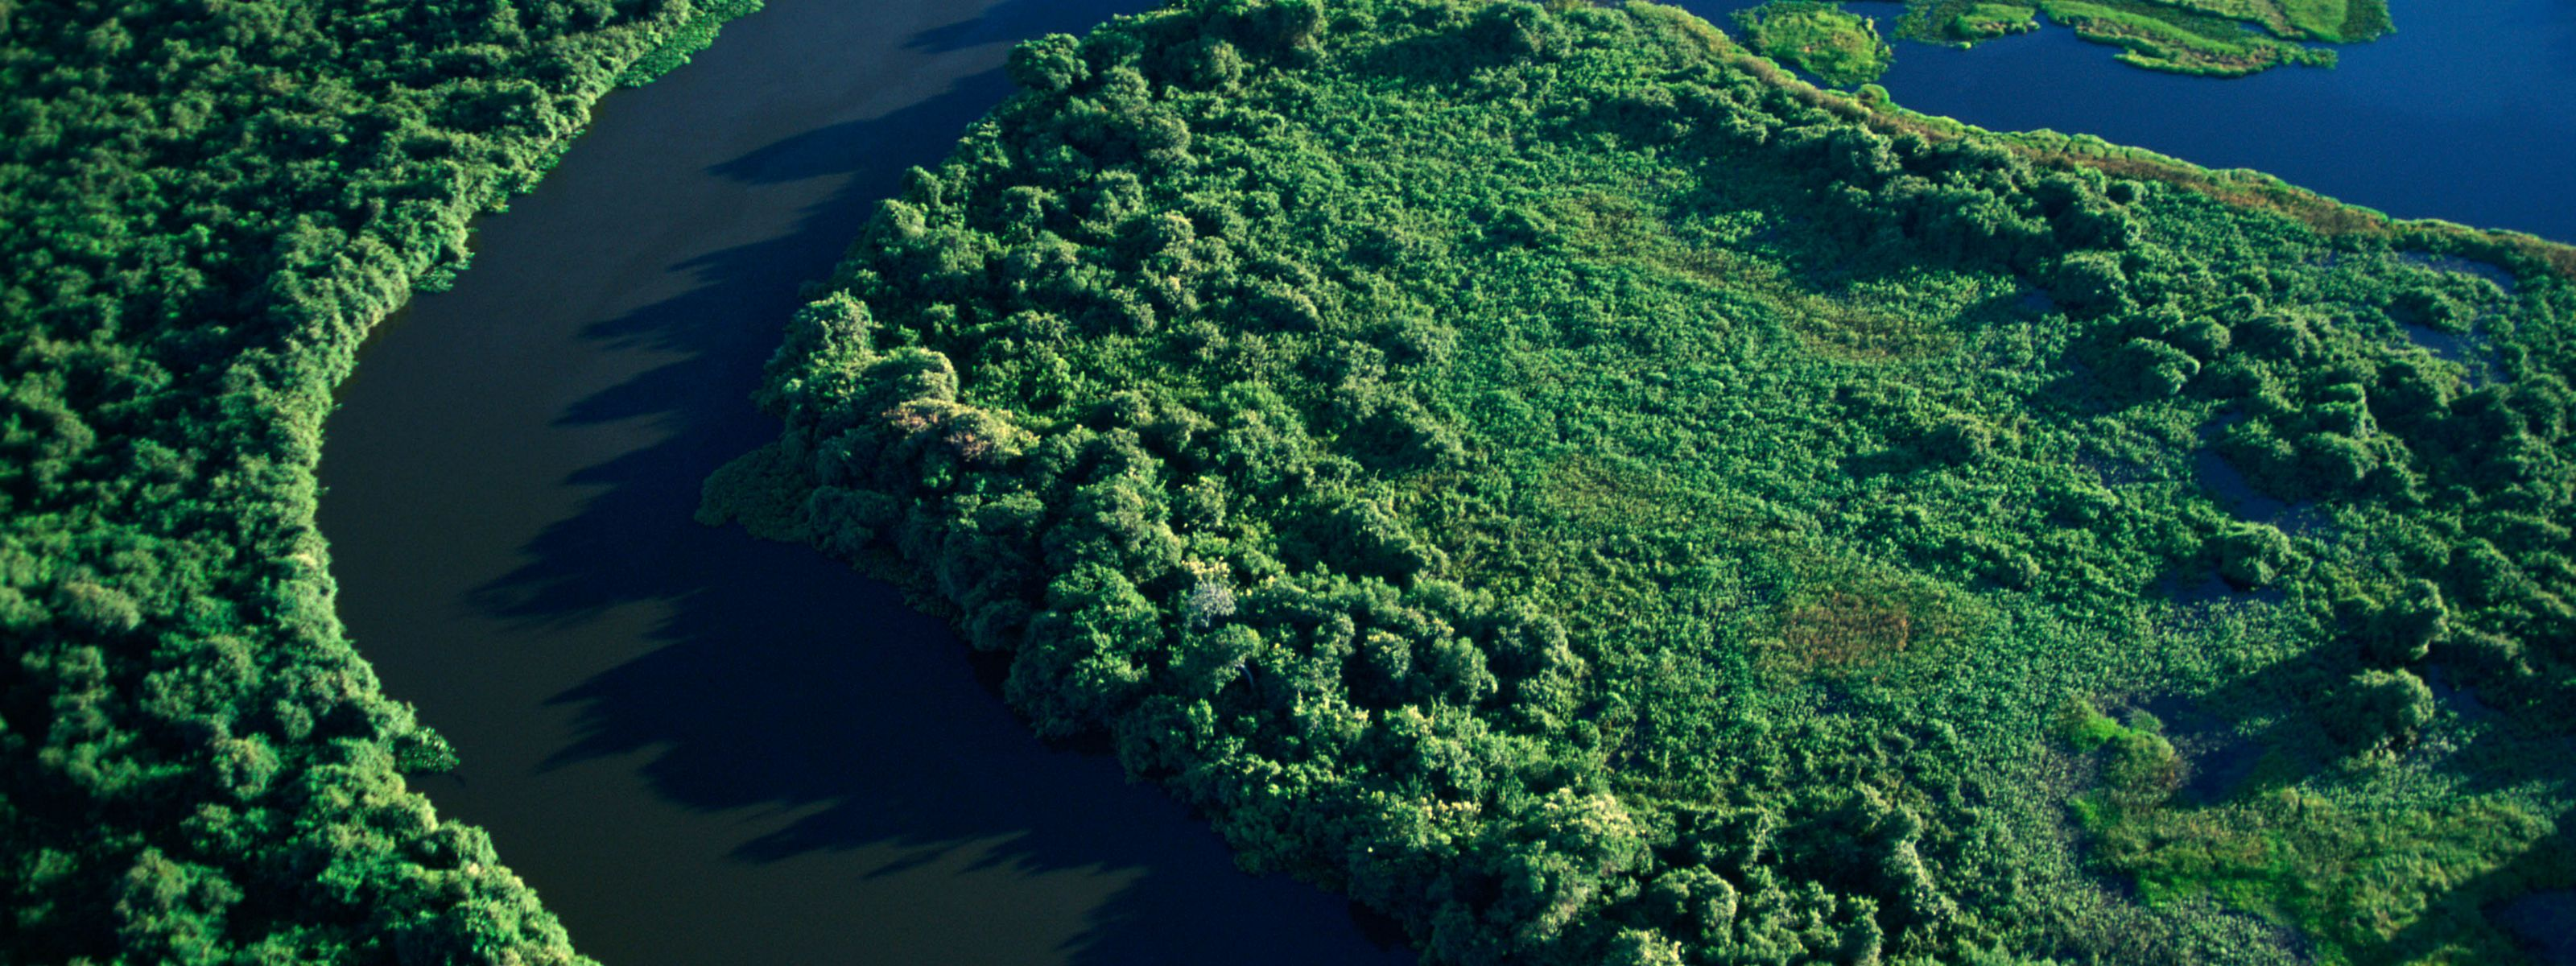 Pantanal National Park in Brazil.